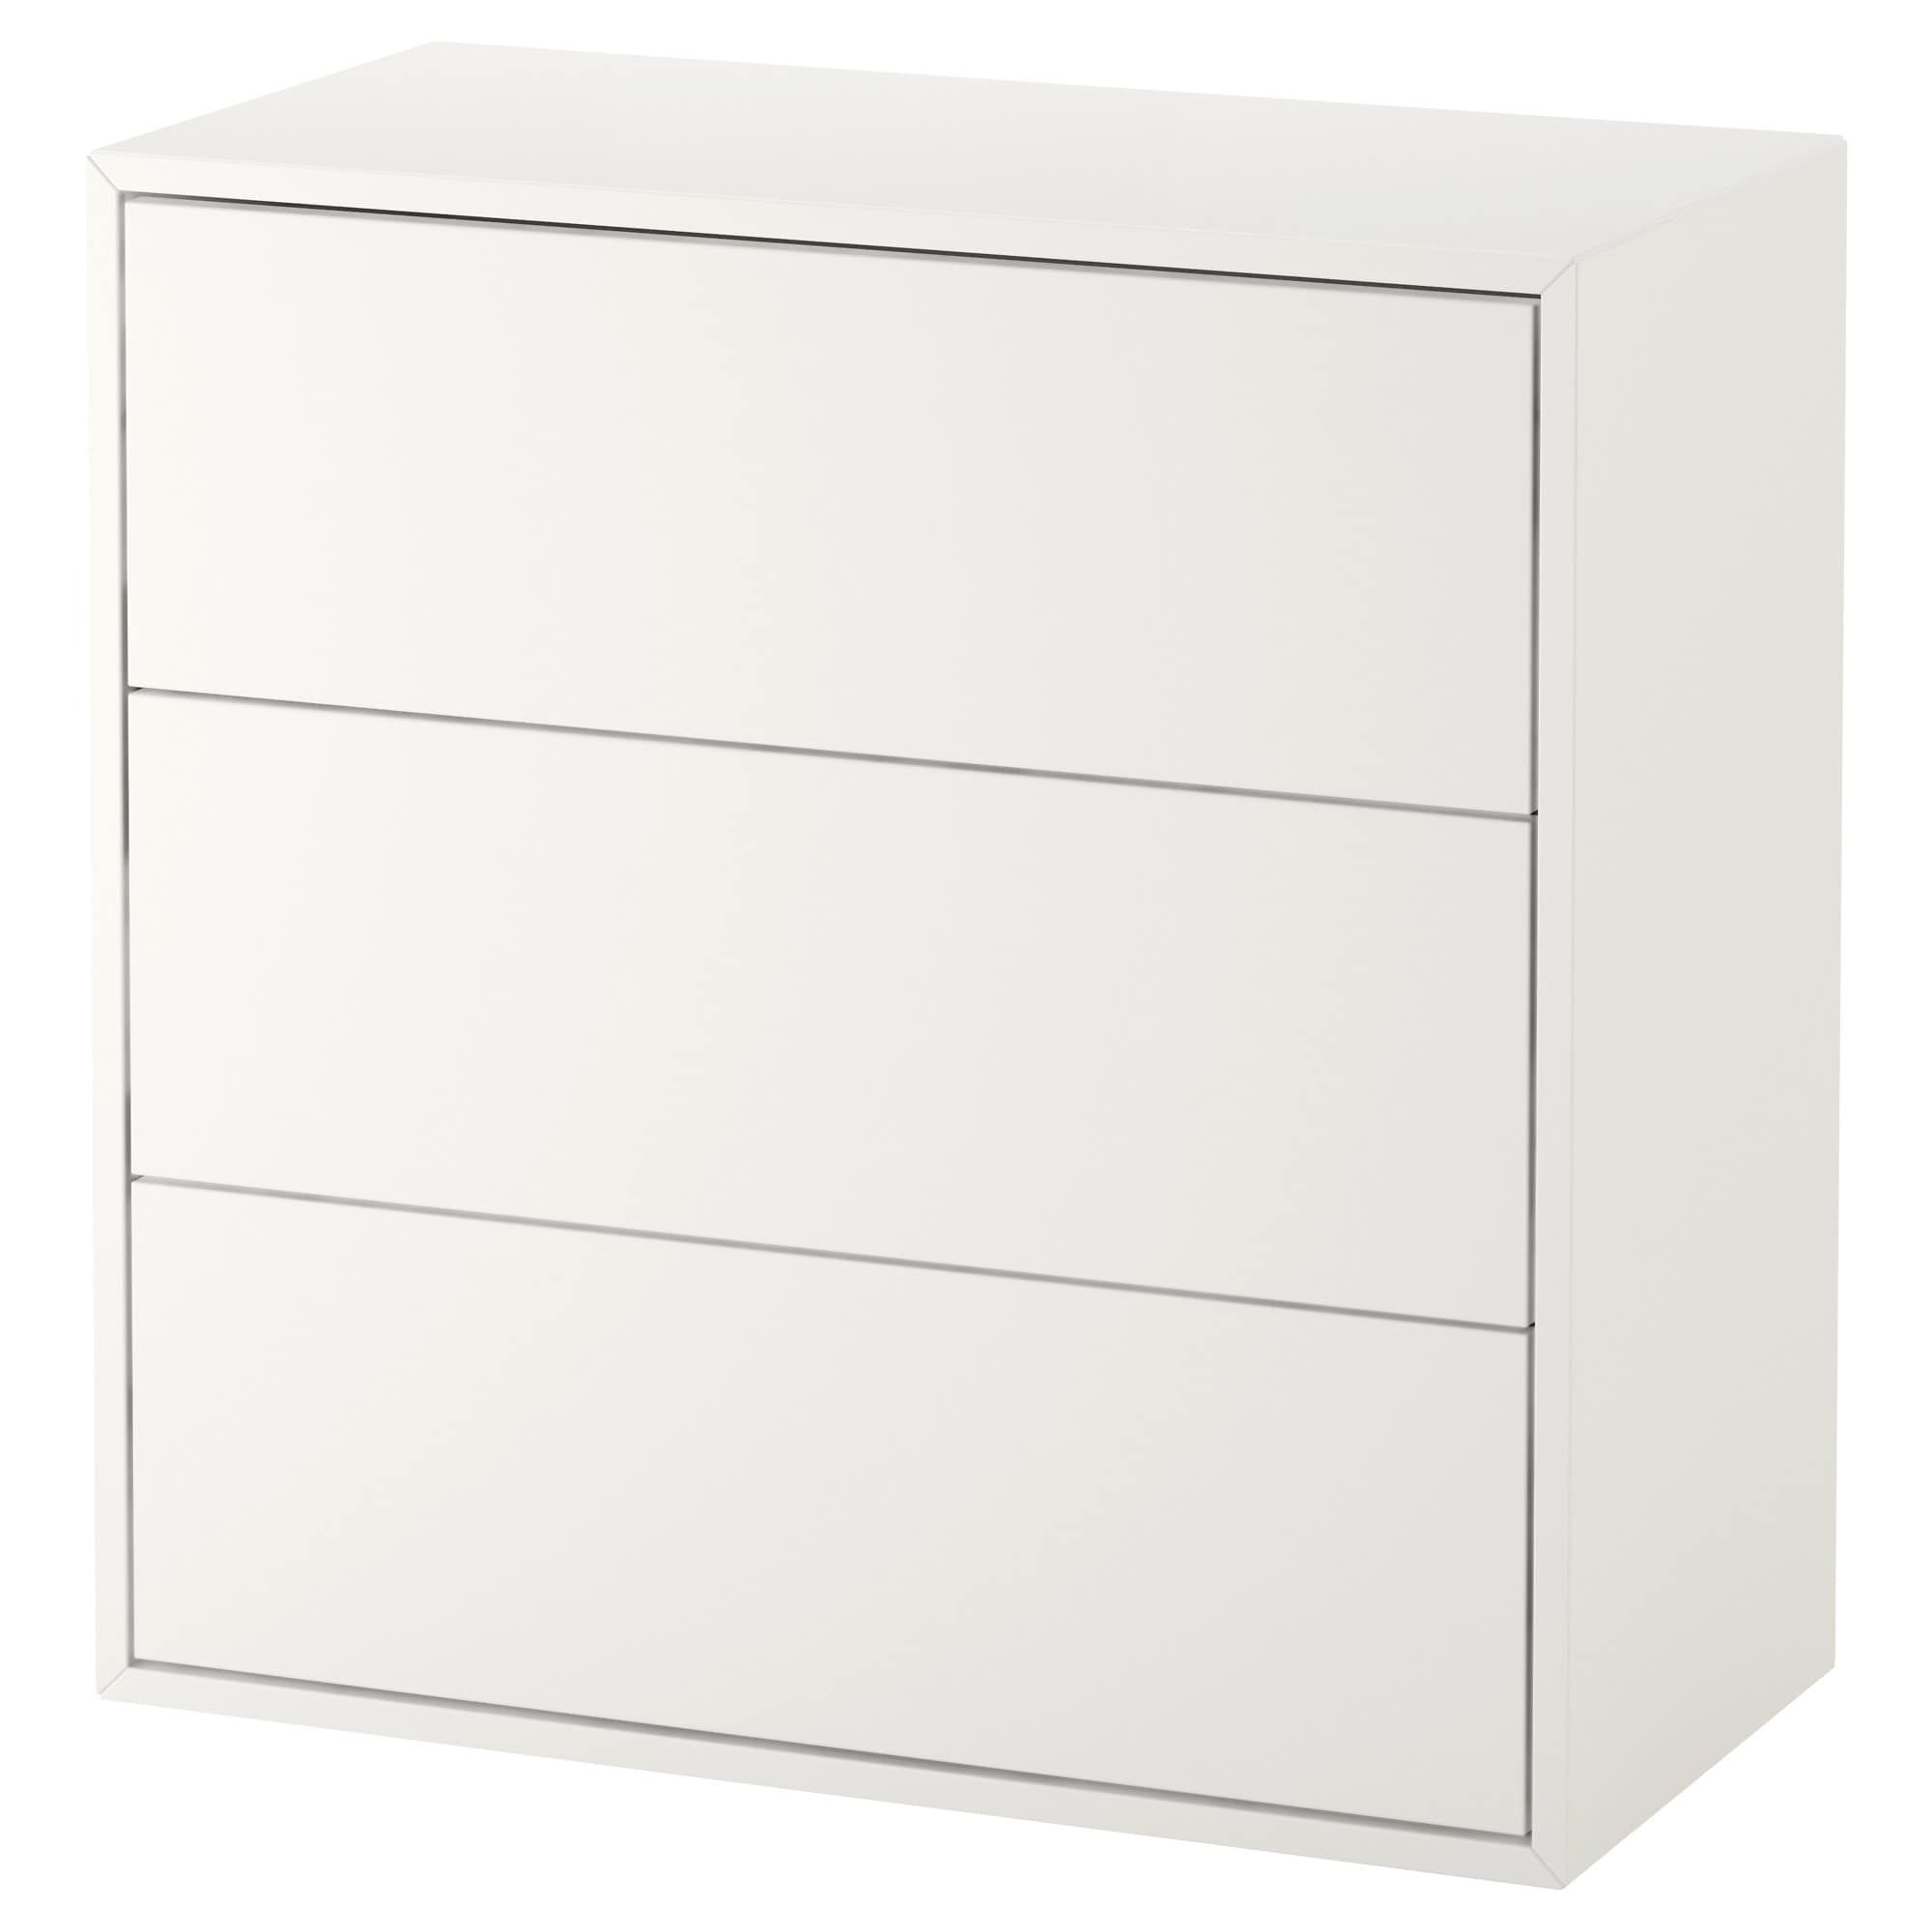 Eket Cabinet With 3 Drawers White 70x35x70 Cm Ikea Regal